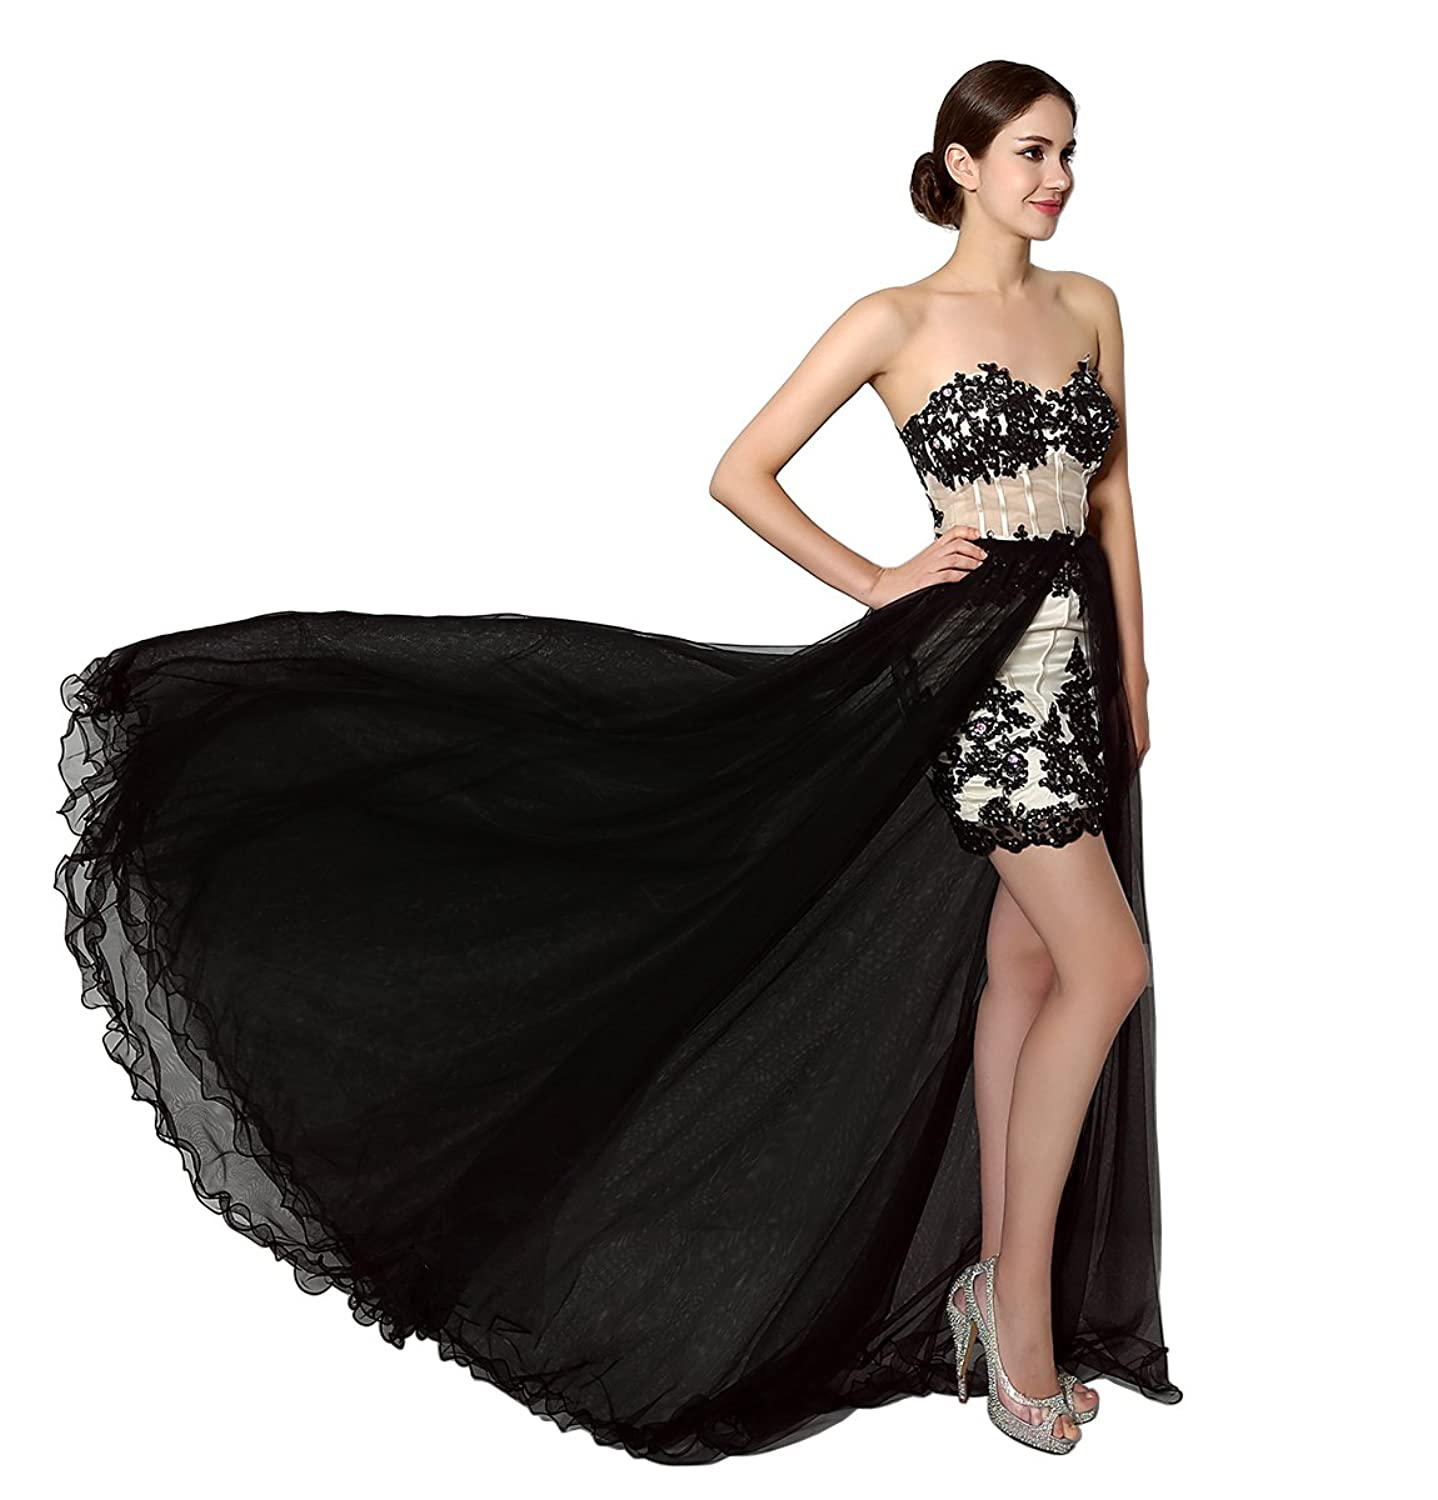 RUKLEID Wowen's Maxi Tulle Fabric With Appliques Crystal Sweetheart Neck Lace-up Back Detachable Court Train Prom Party Dresses